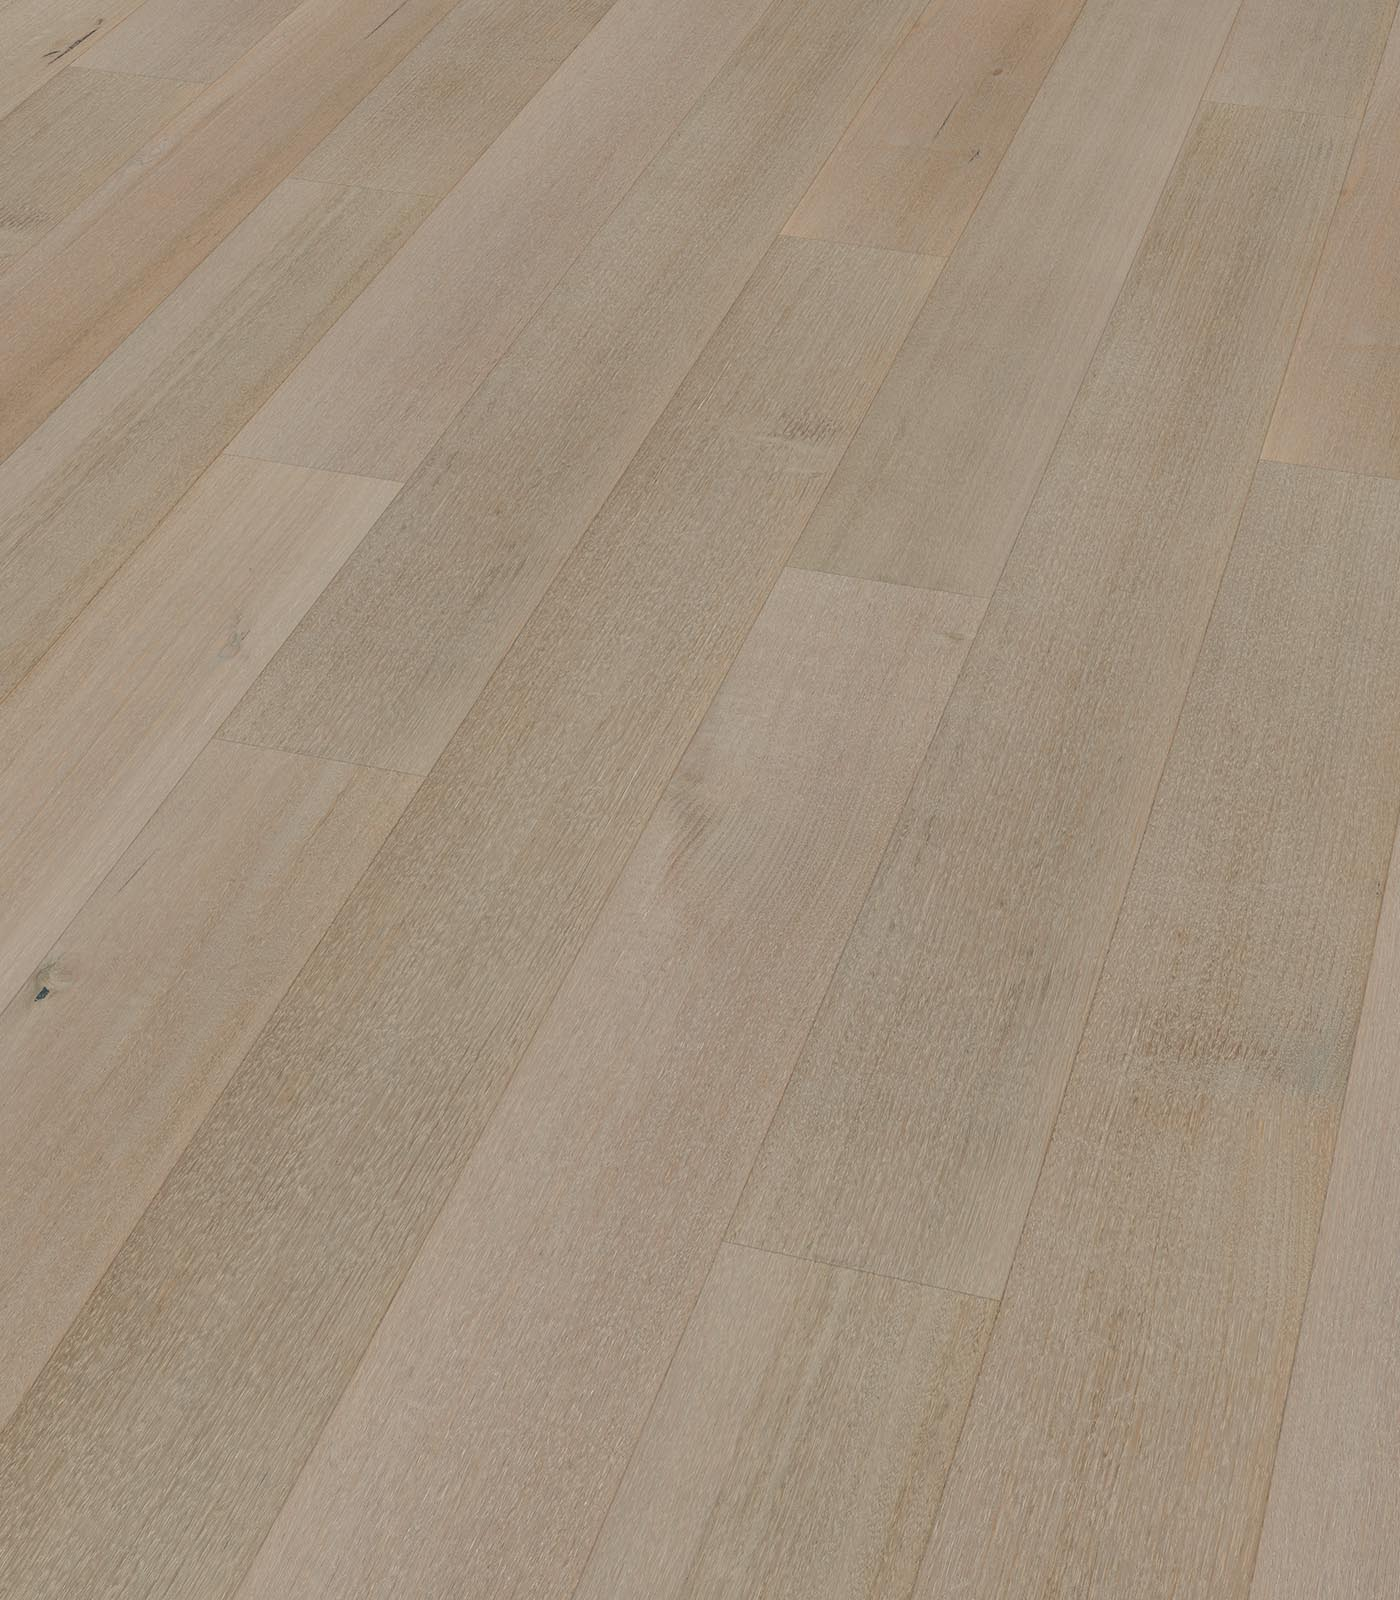 Kingston-After Oak Collection-Tasmanian Oak Floors-angle